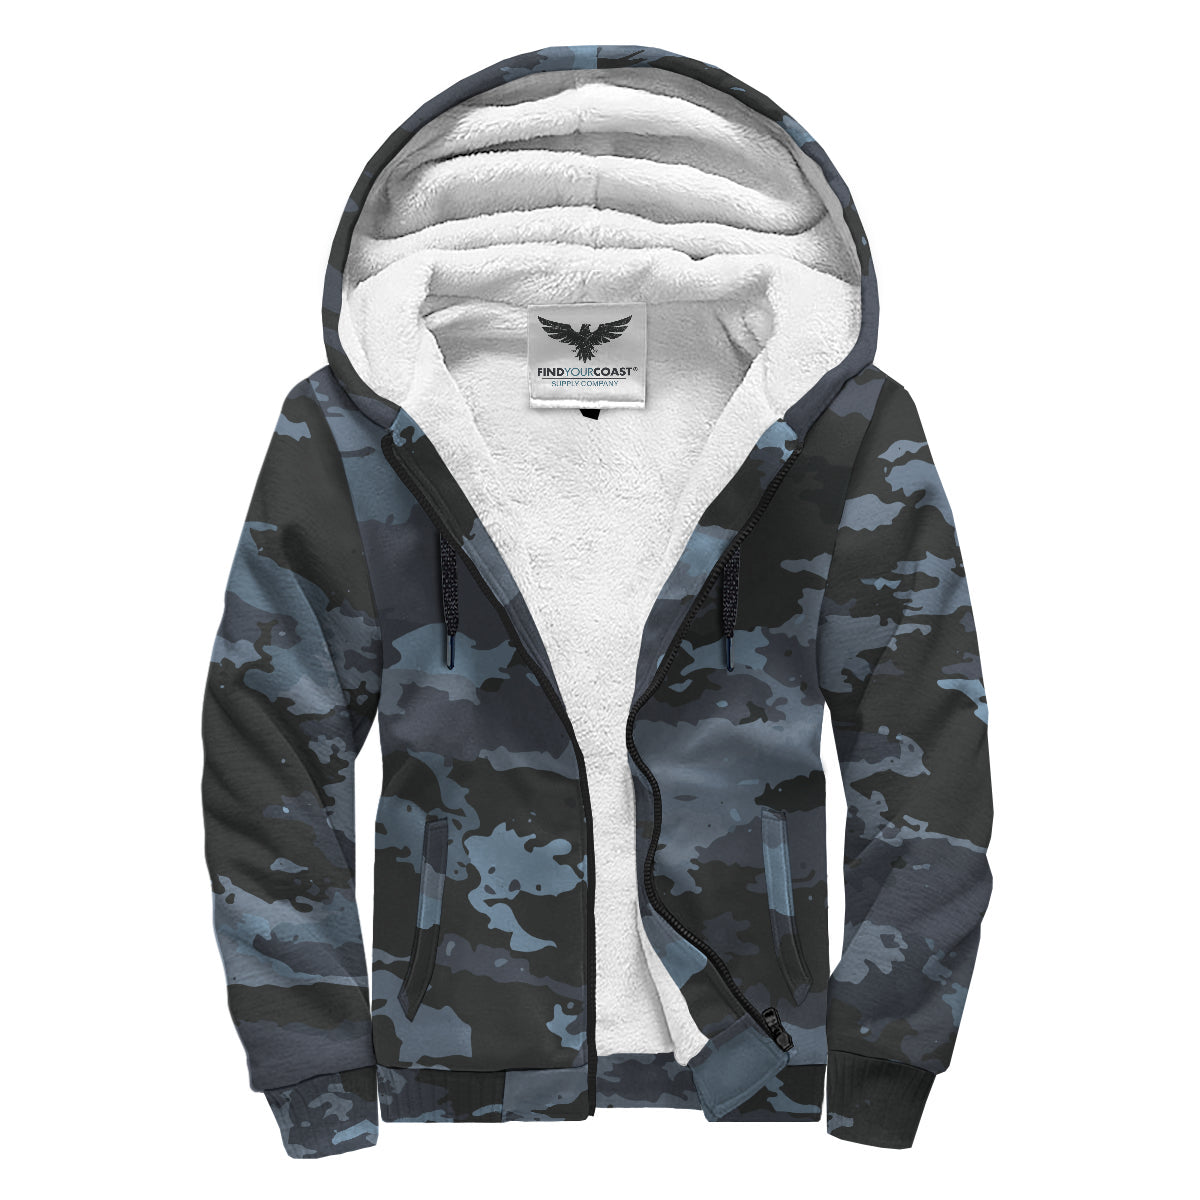 Find Your Coast 'Coast Camo' Sherpa Lined Zip Up Hoodie - Find Your Coast Supply Co.